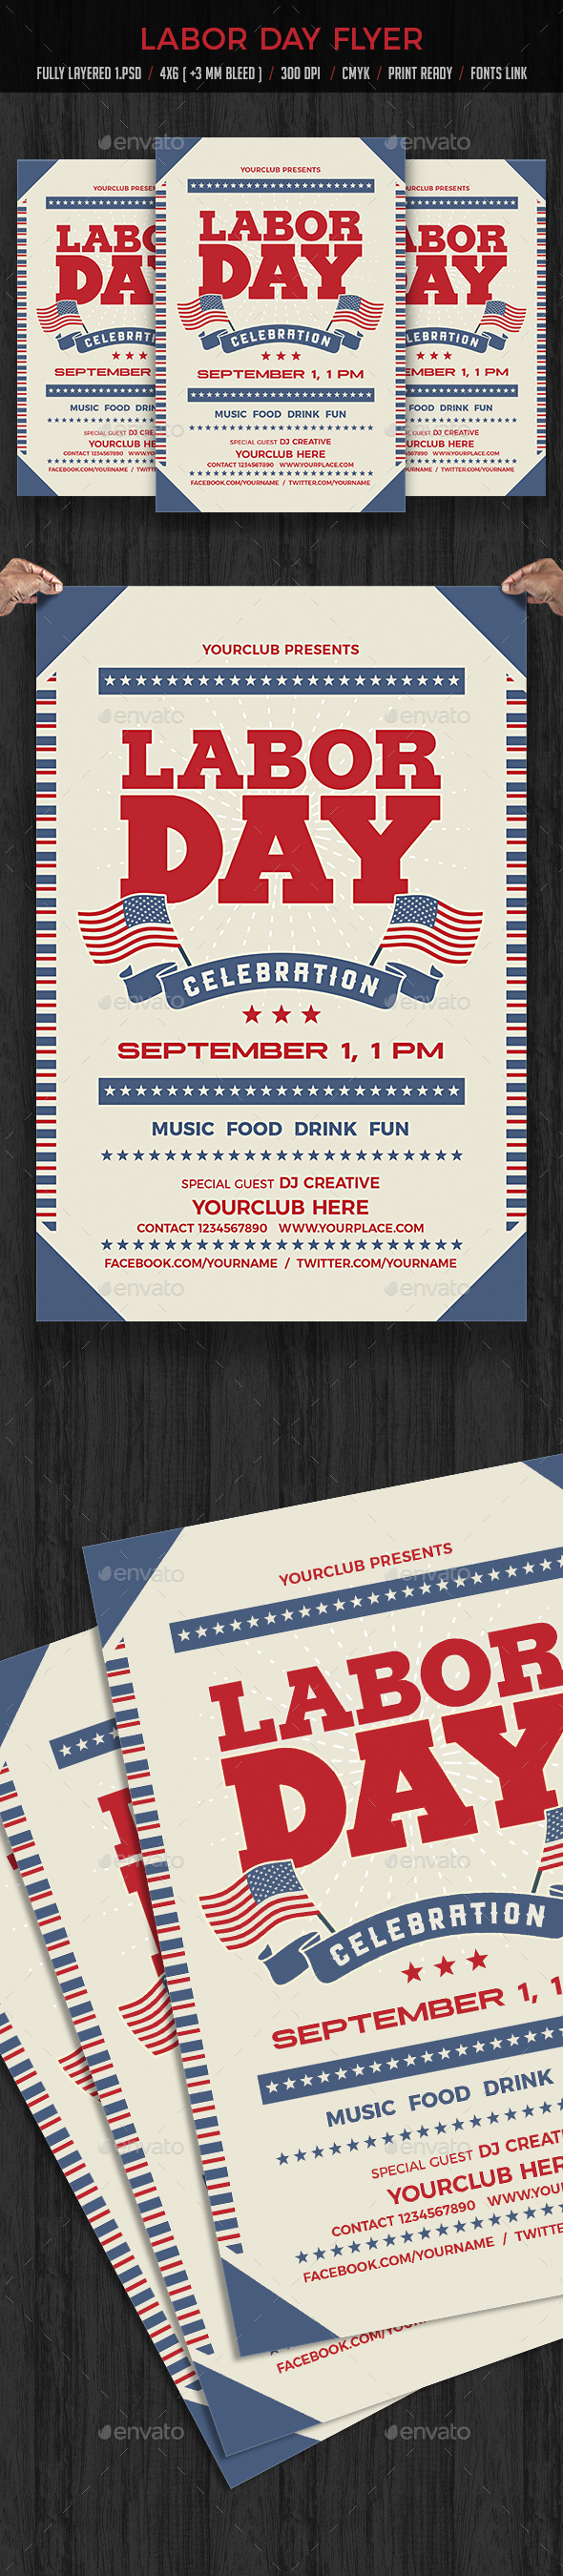 Labor Day Flyer - Holidays Events